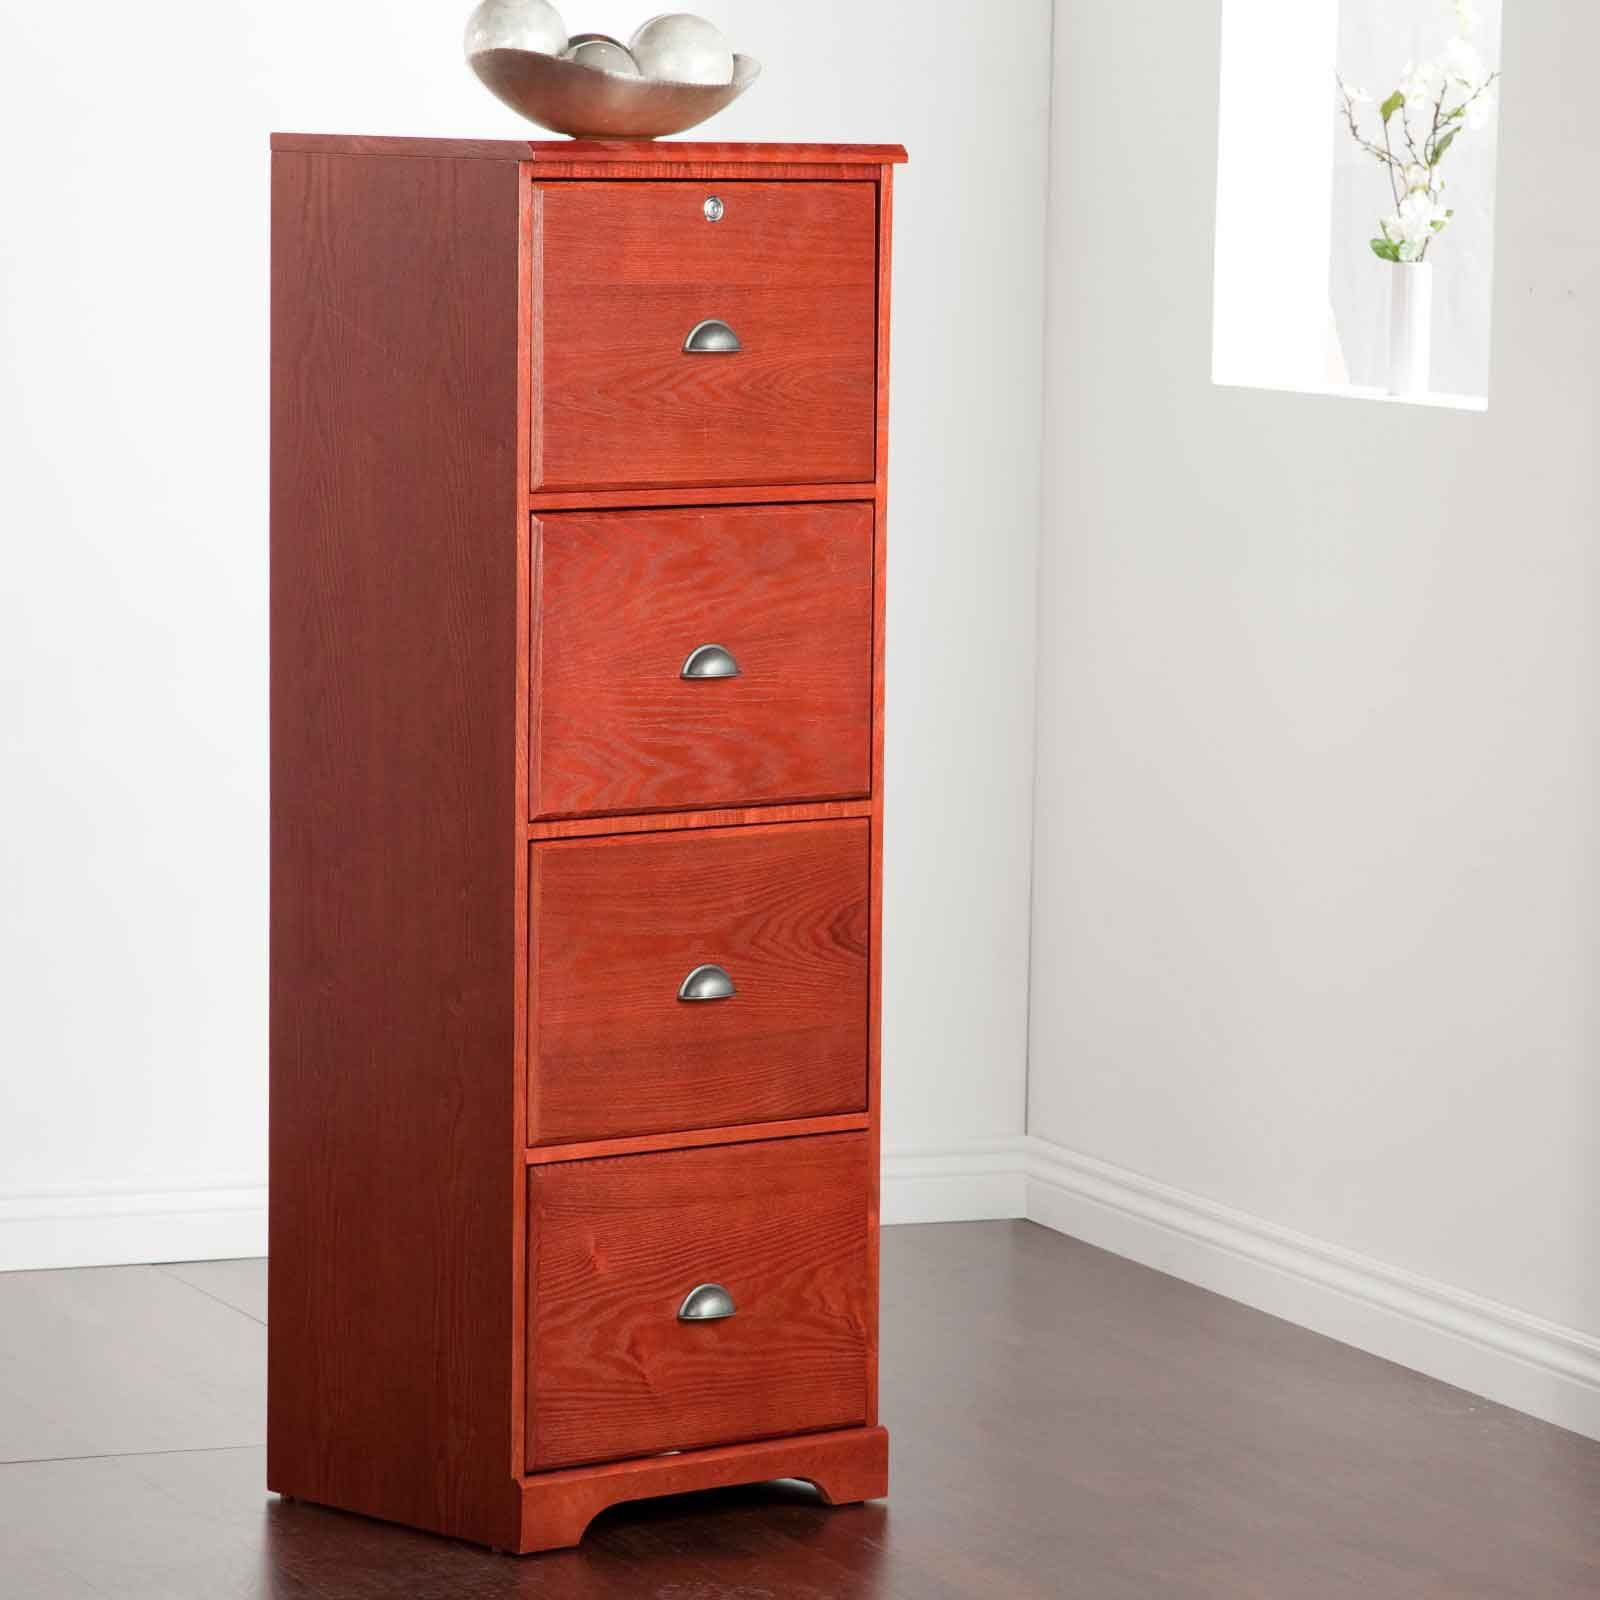 Depiction Of Decorative Filing Cabinets For Both Style And Function